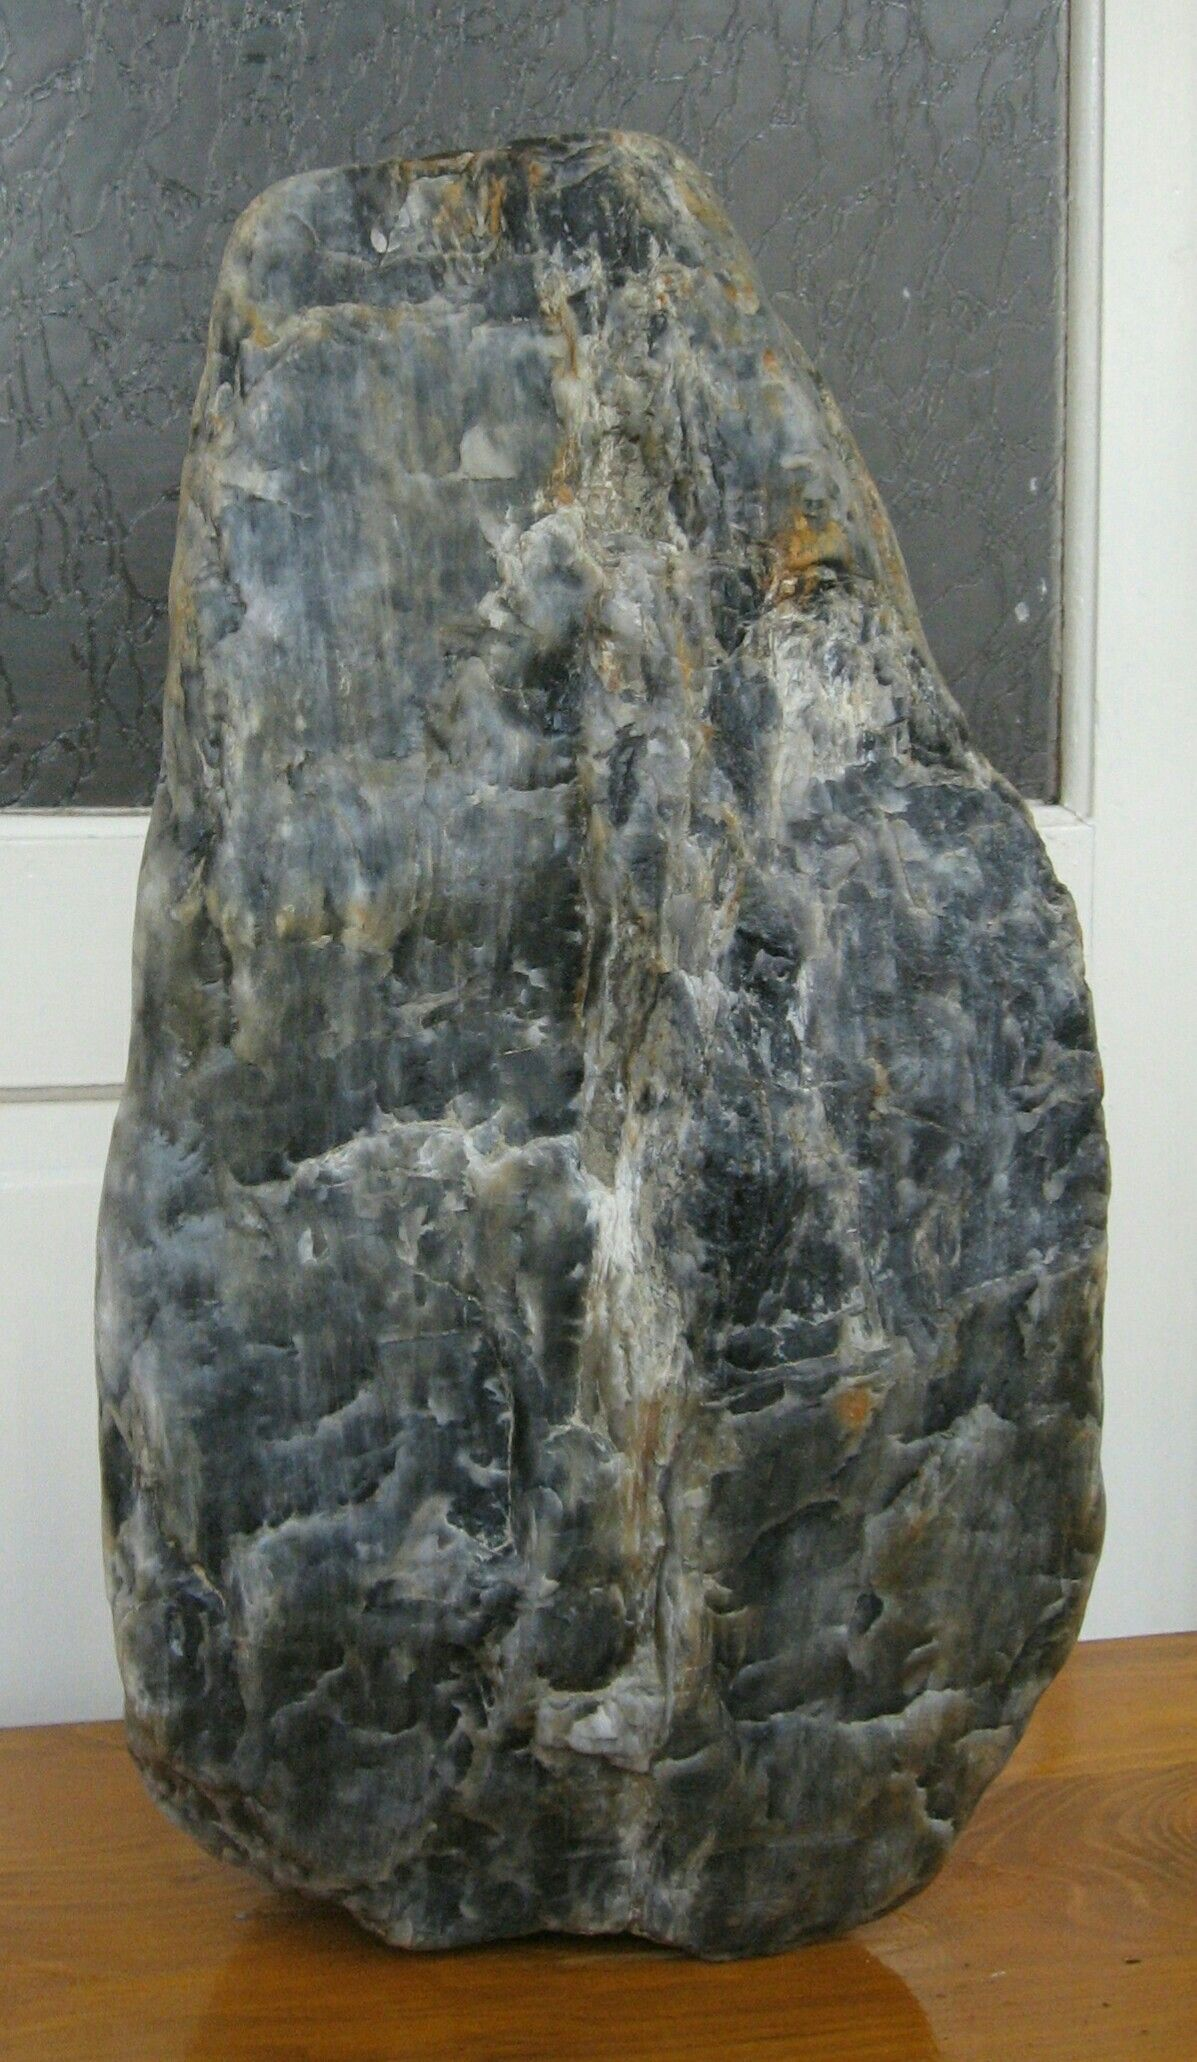 Grey Bluish Quartz From Cambrian Era Result Of A Volcanic